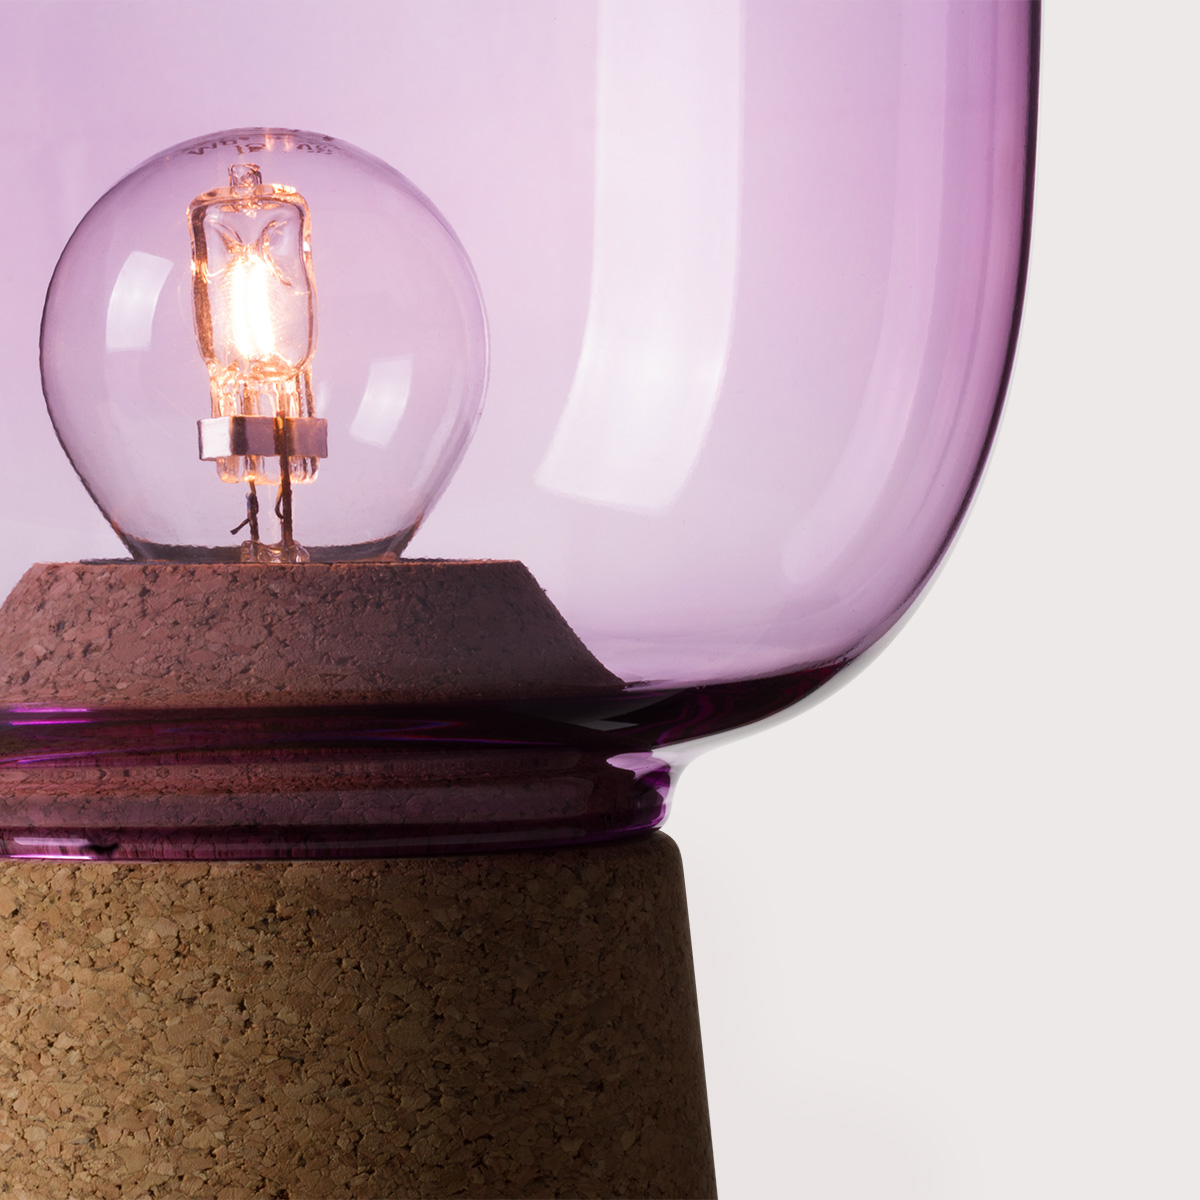 Picia table lamp designed by Enrico Zanolla in purple glass and natural cork, transparent cable, detail of the junction between cork and glass, beautiful match of curves